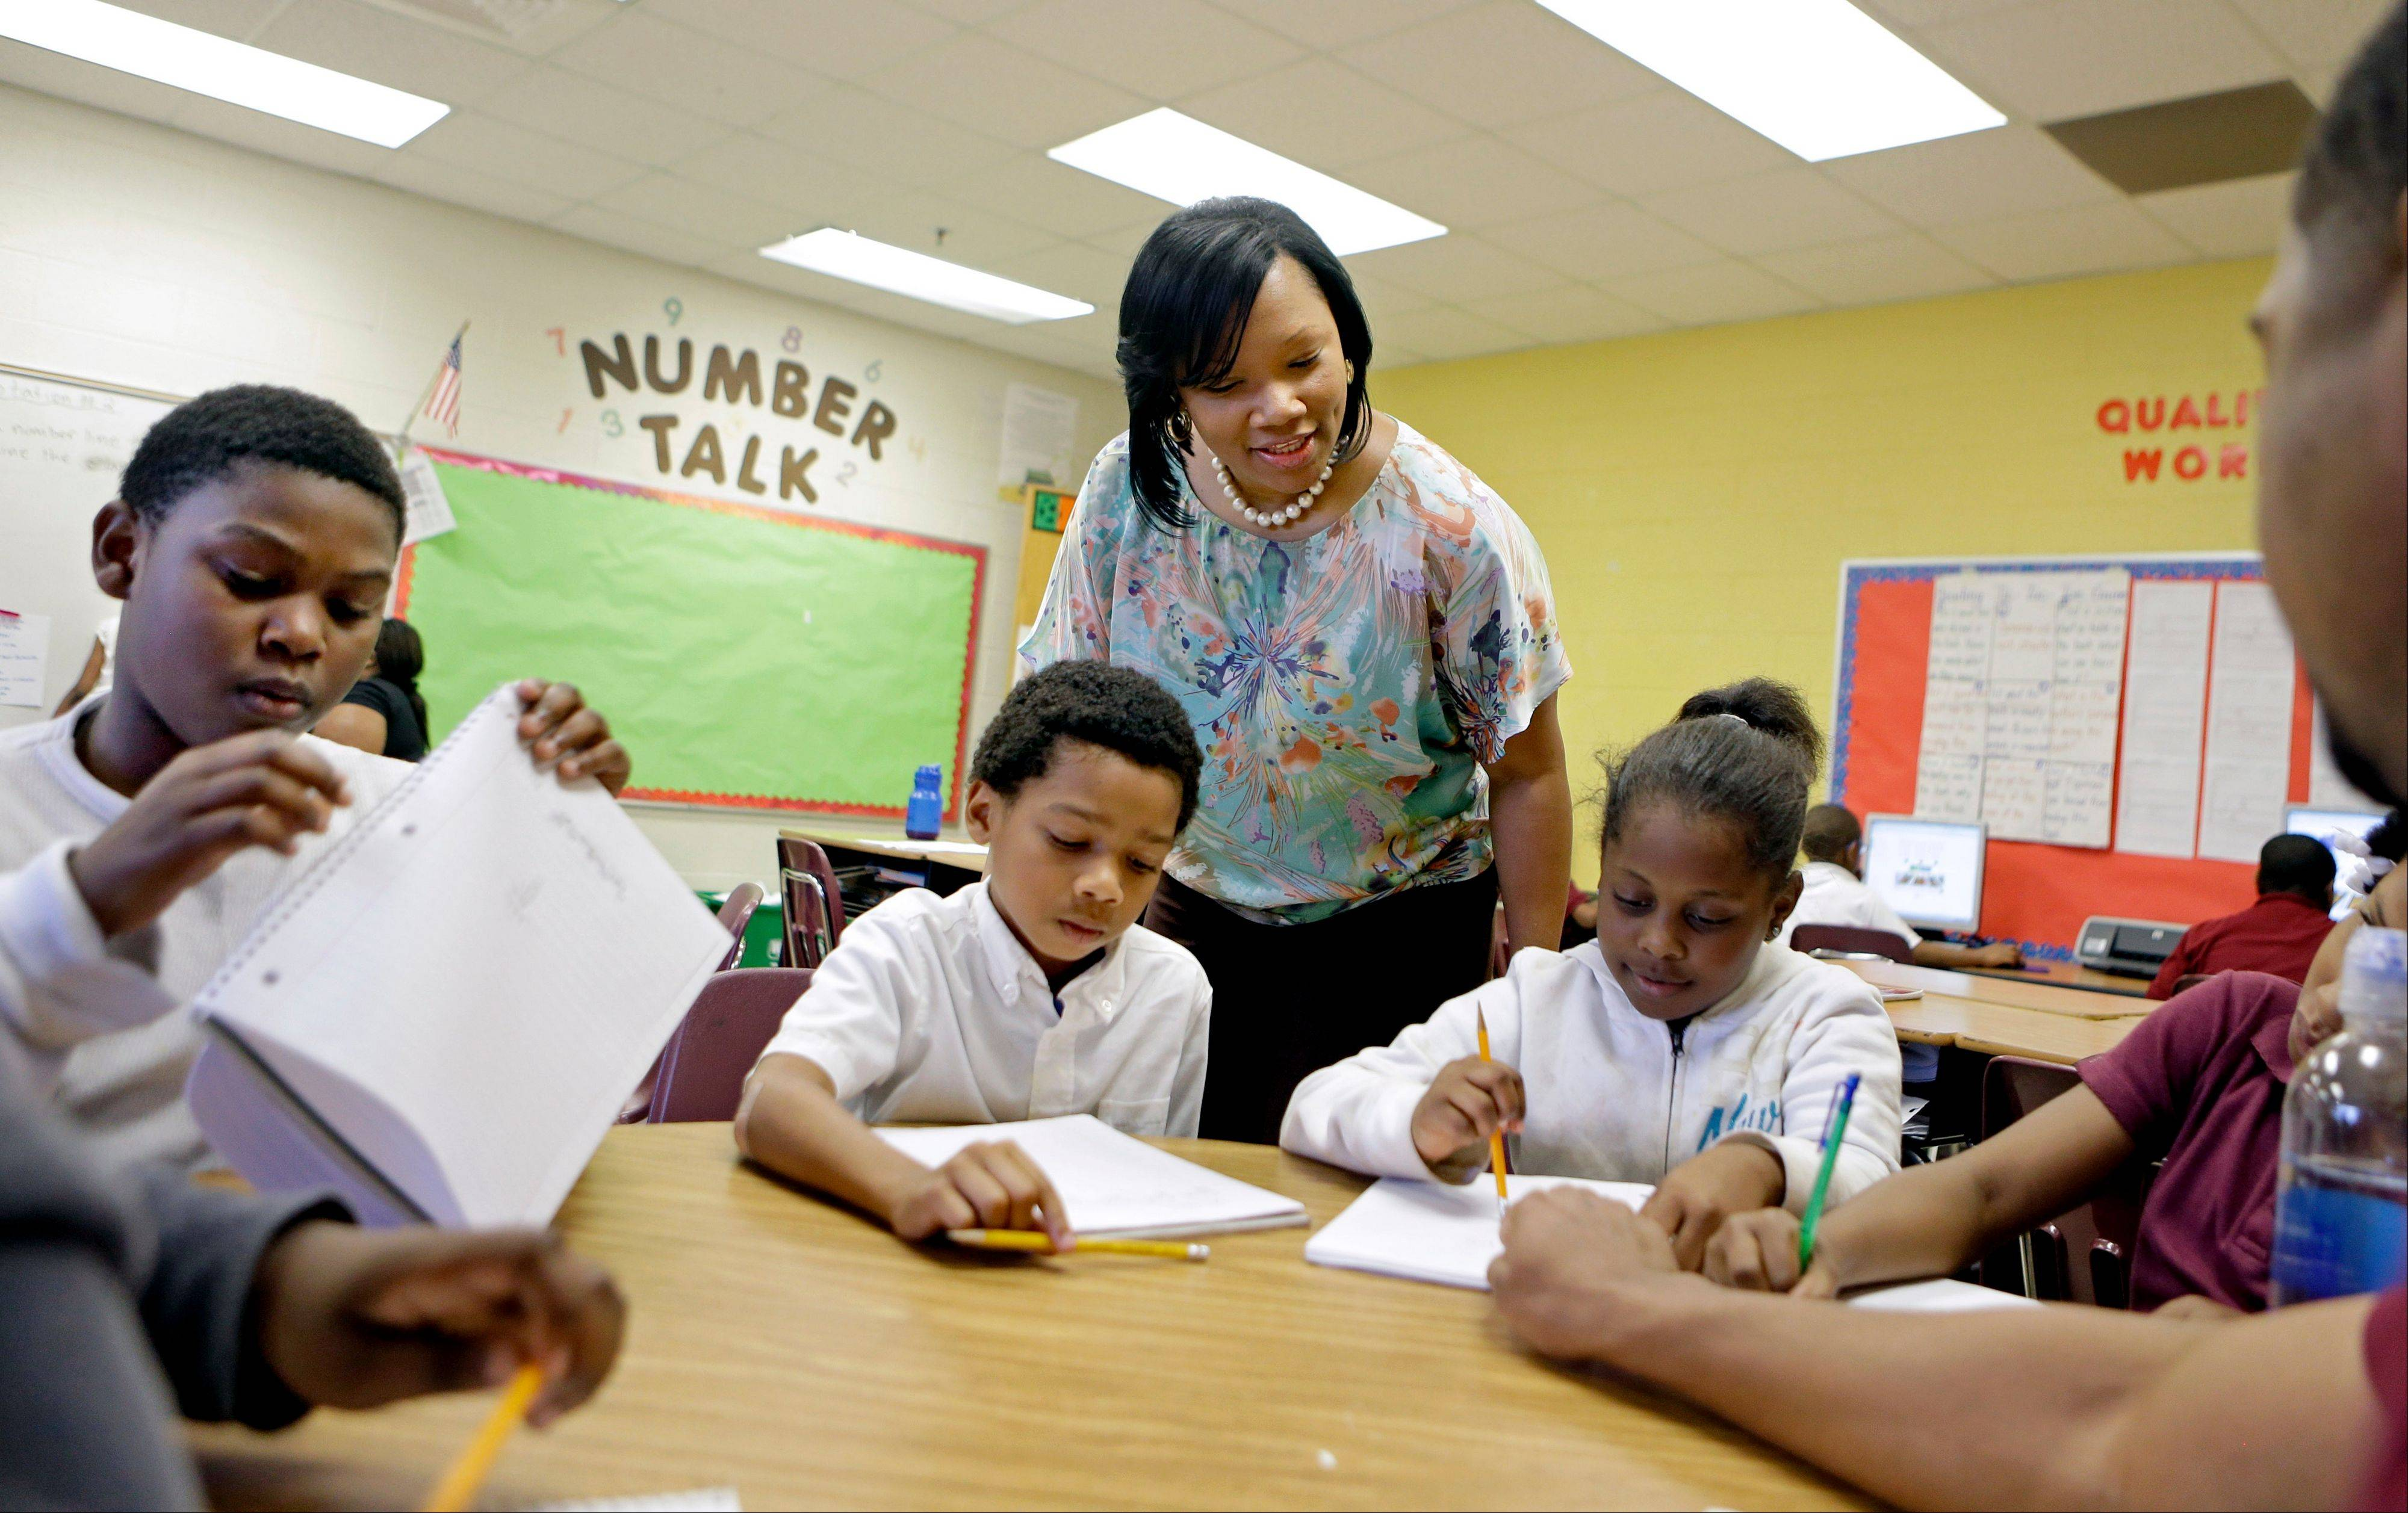 Associated Press Burgess-Peterson Elementary School principal Robin Robbins, center, meets with students during an after-school study program in Atlanta, in preparation for state standardized testing, soon to begin. A new poll from The Associated Press-NORC Center for Public Affairs Research finds parents of school-age children view standardized tests as a useful way to track student progress and school quality.